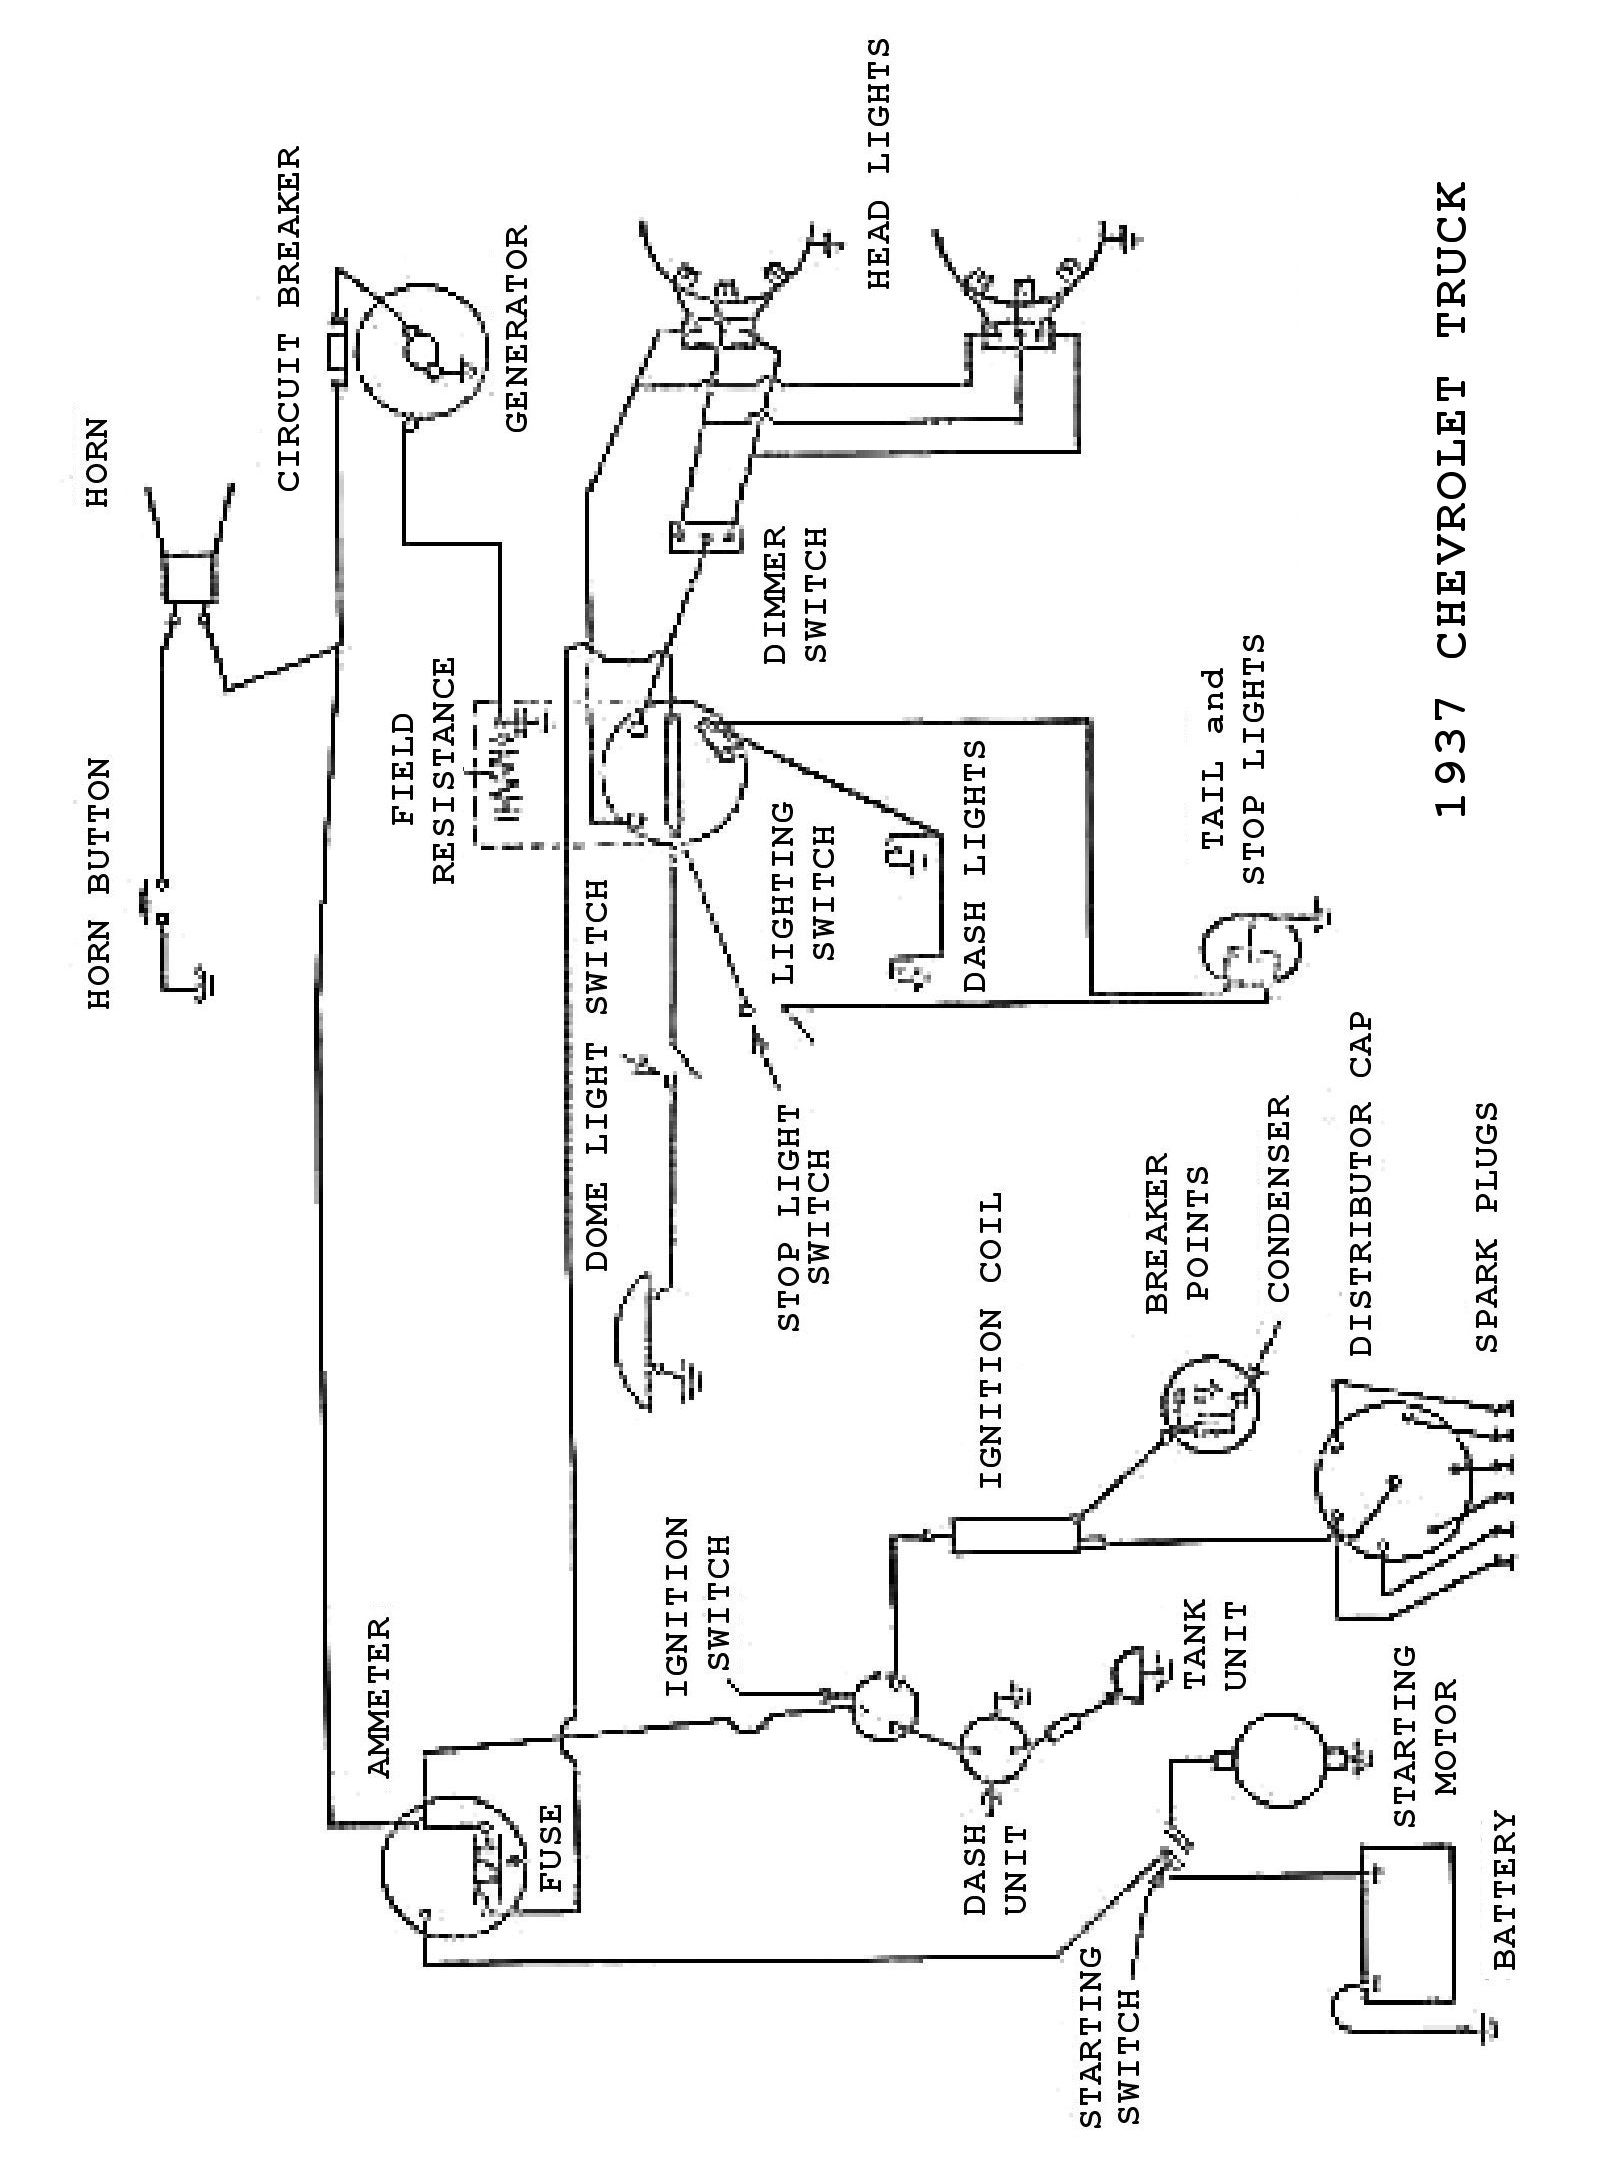 Chevy Wiring Diagrams Switch And A 3 Wire Between Switches Http Www Electrical Online Com 1937 Truck